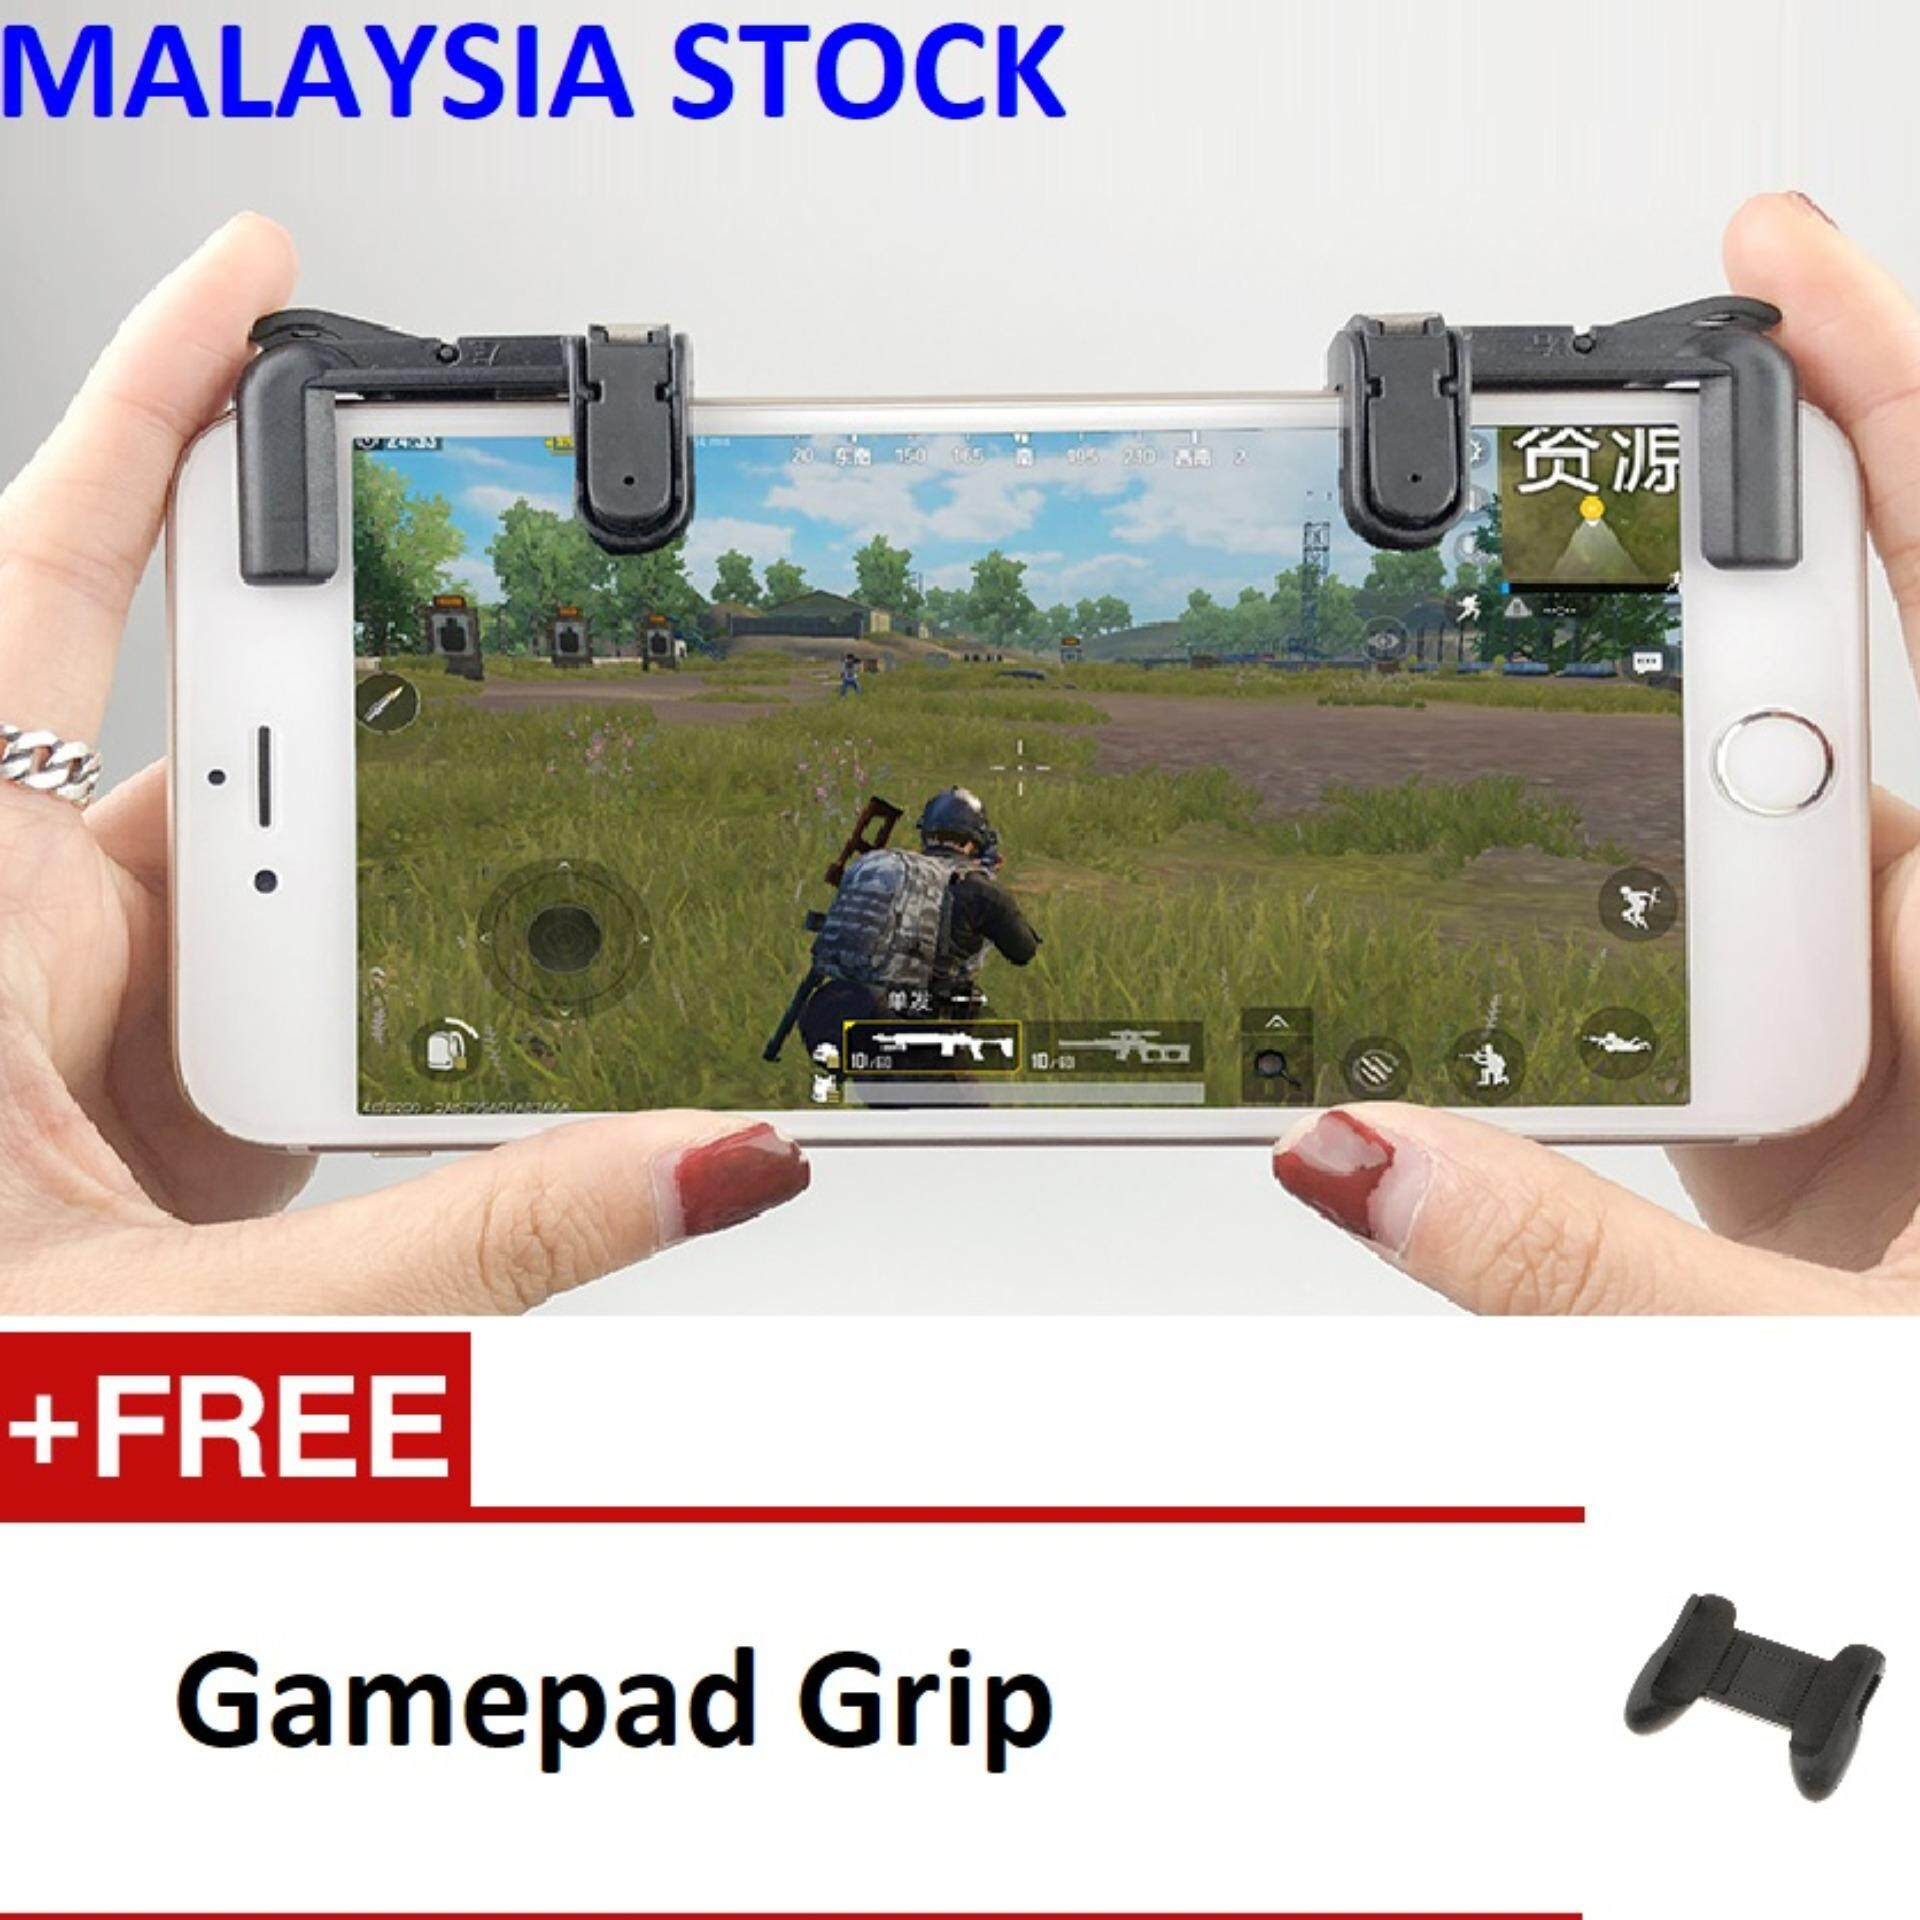 Cek Harga Pubg Ros Game Set Controller With L1 R1 Trigger Joystick Sharp Shooter Mobile Rule Of Survival Versi 3 V21 Phone Shooting Games Shortcut Key Knive Out Gamepad